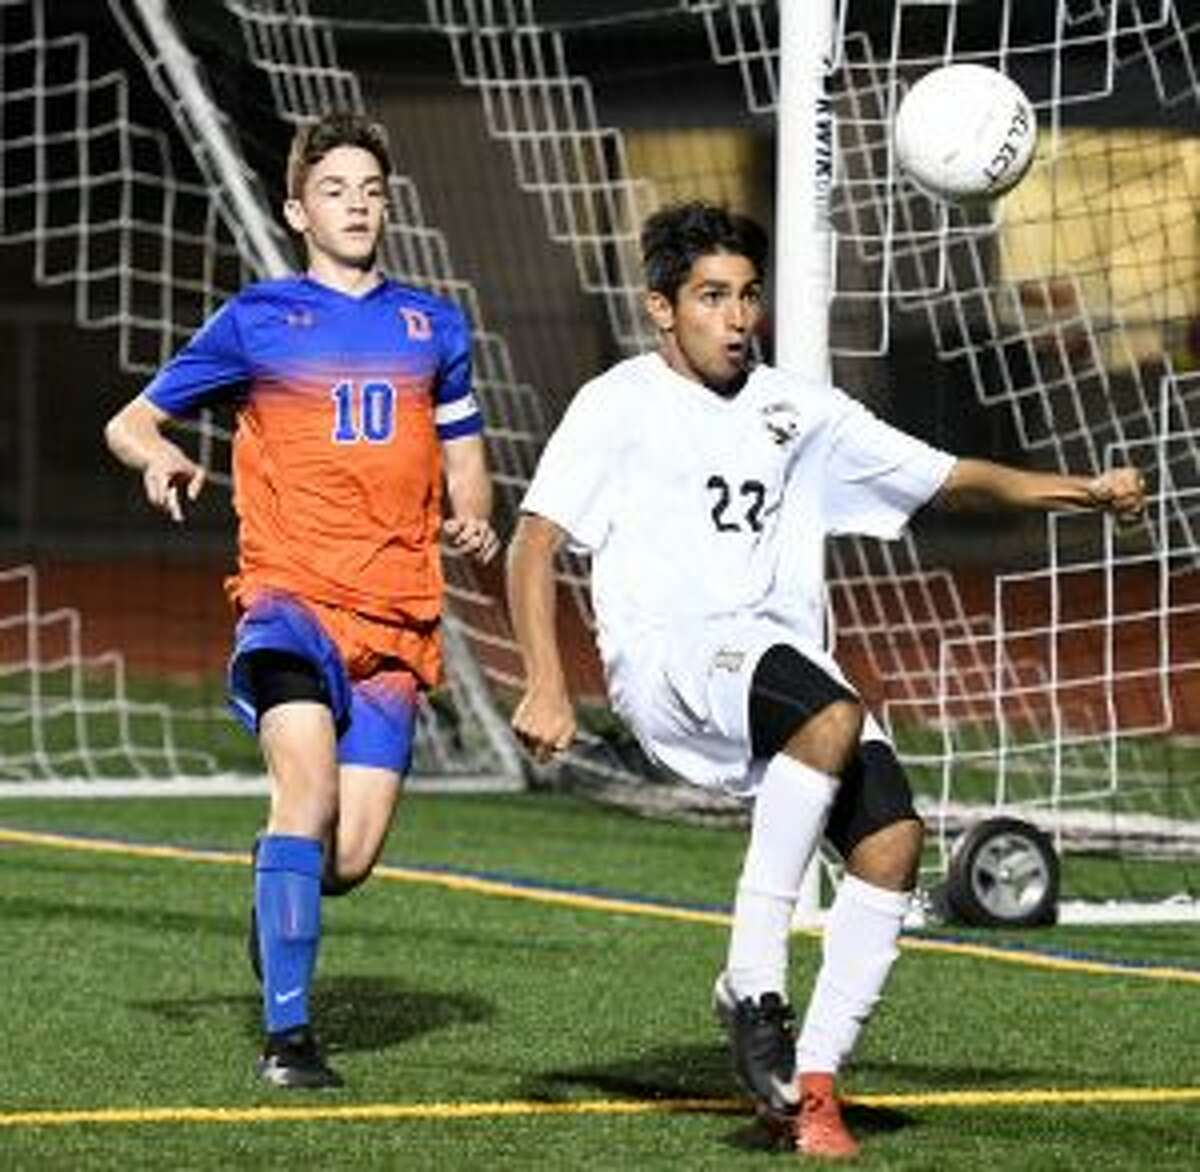 Andrew Restrepo had the assist on the game-winning goal.